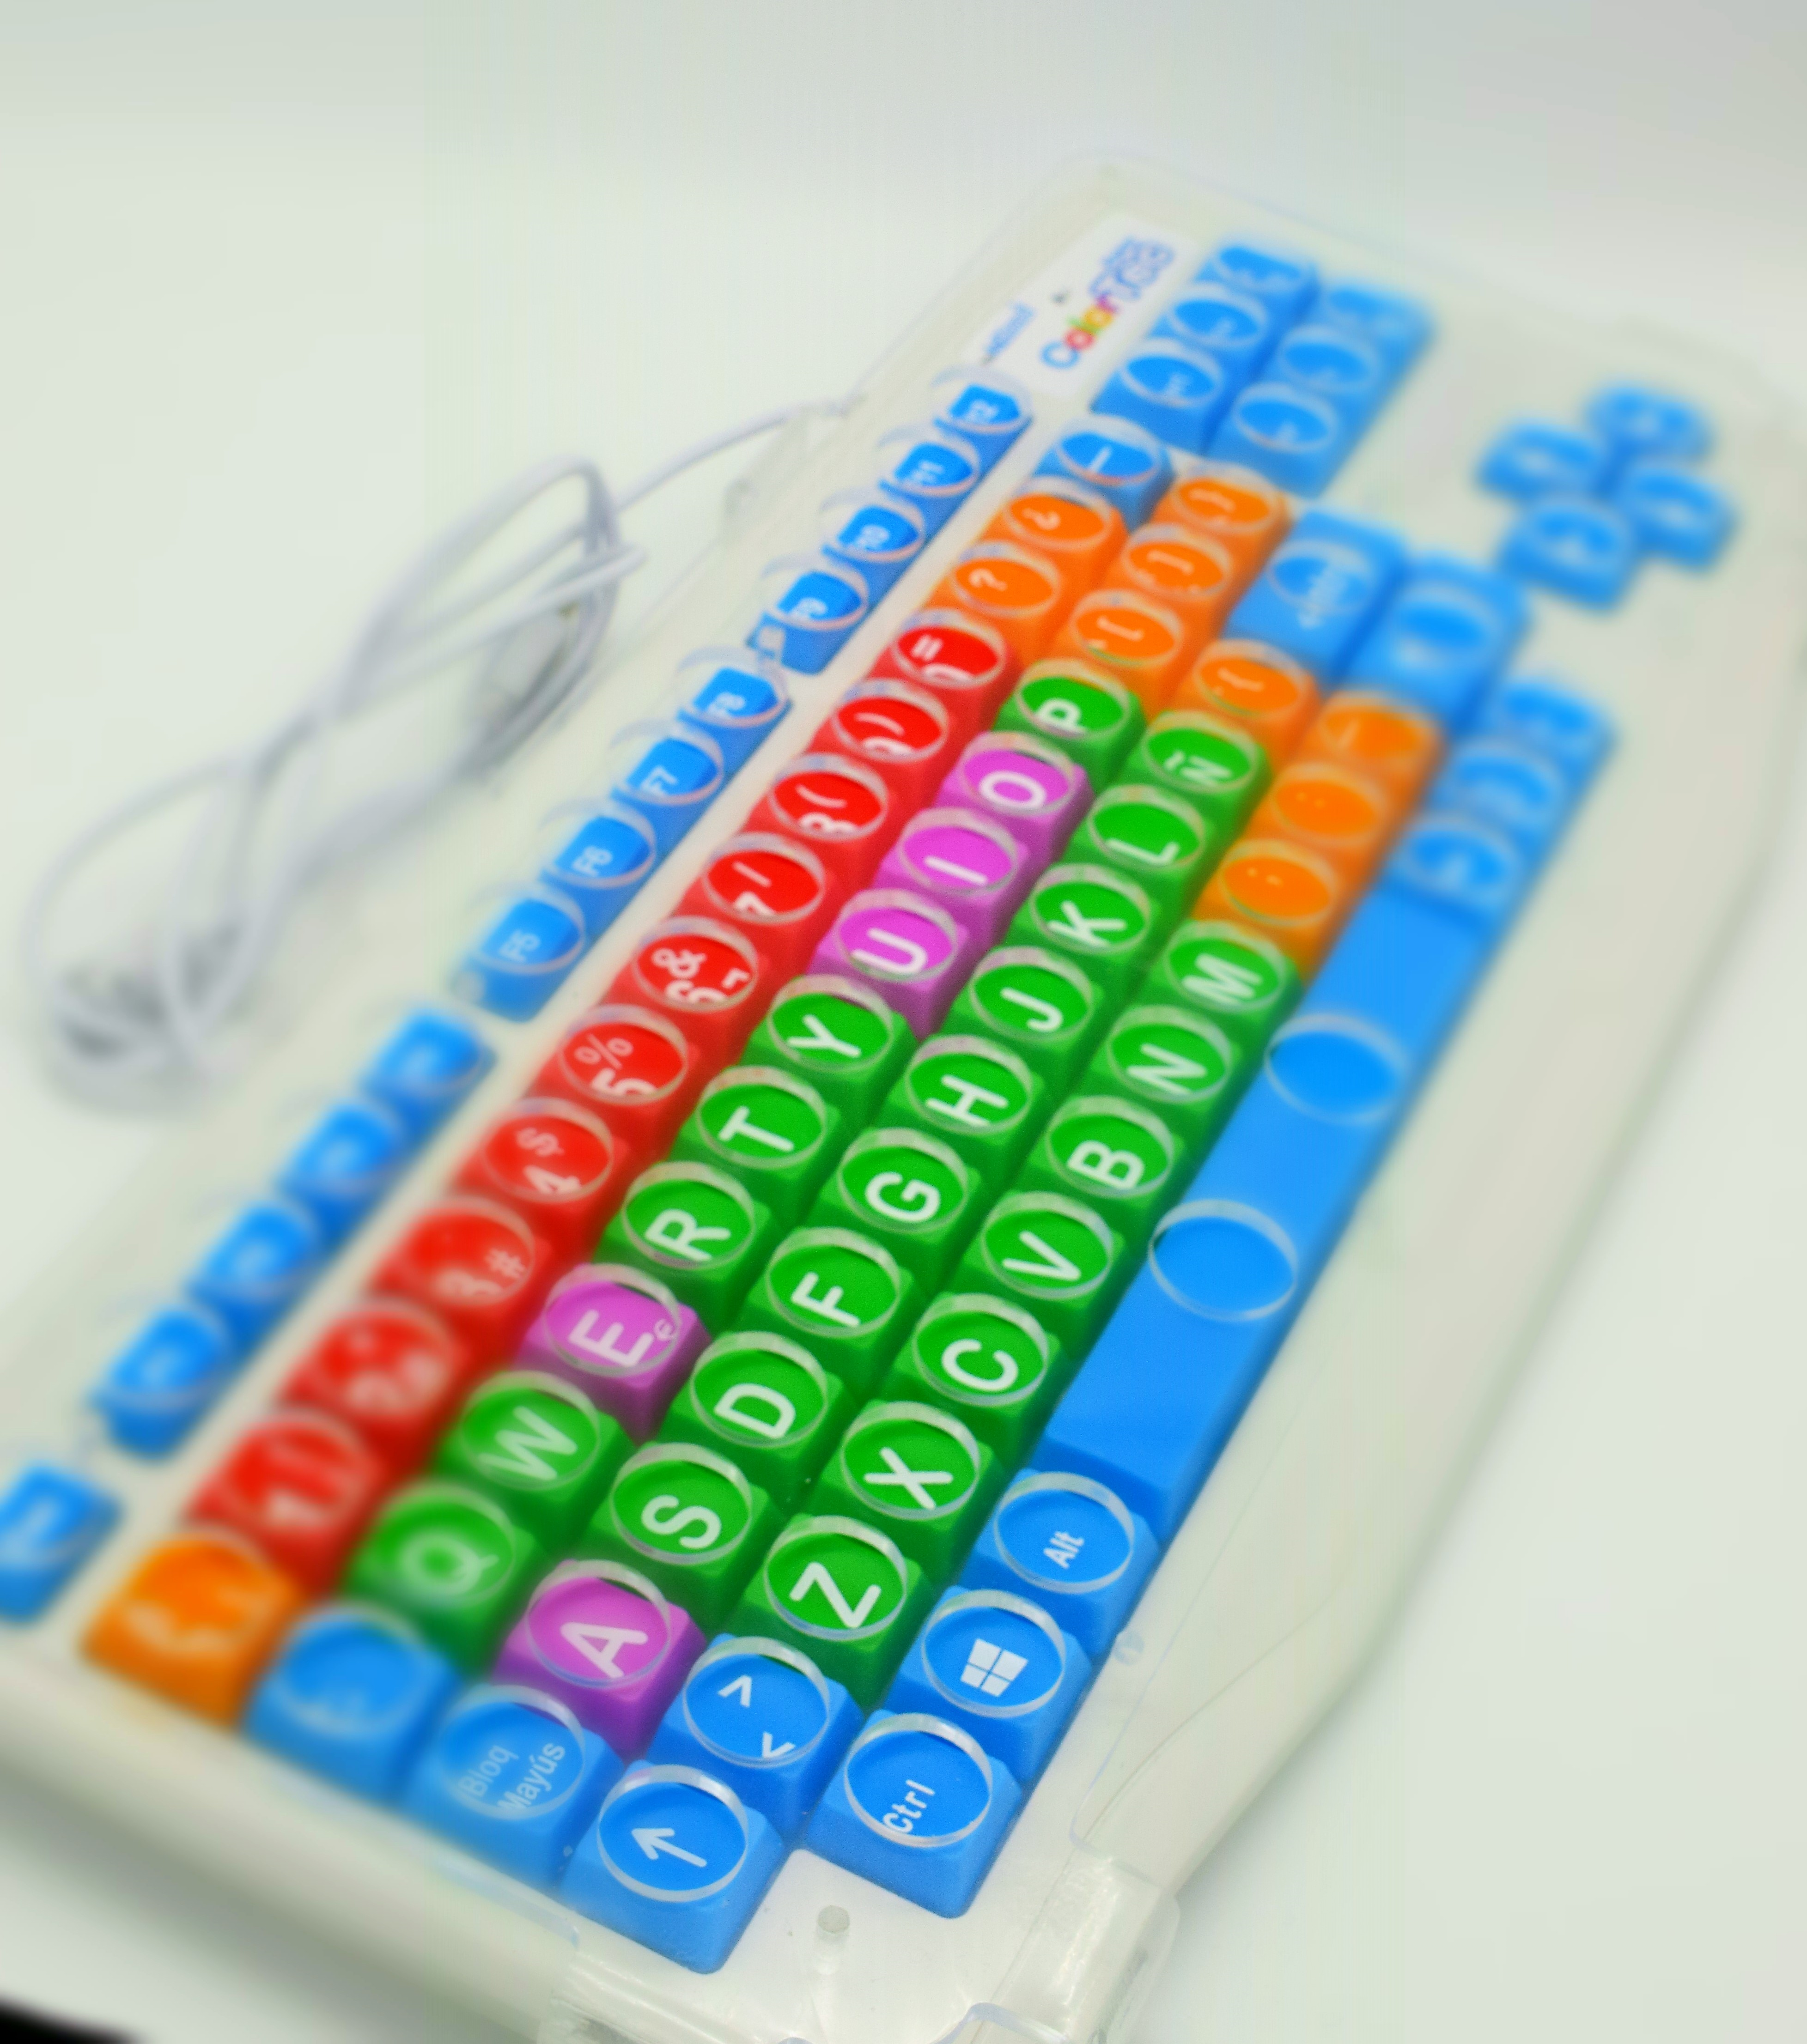 Image of the colorTec keyboard